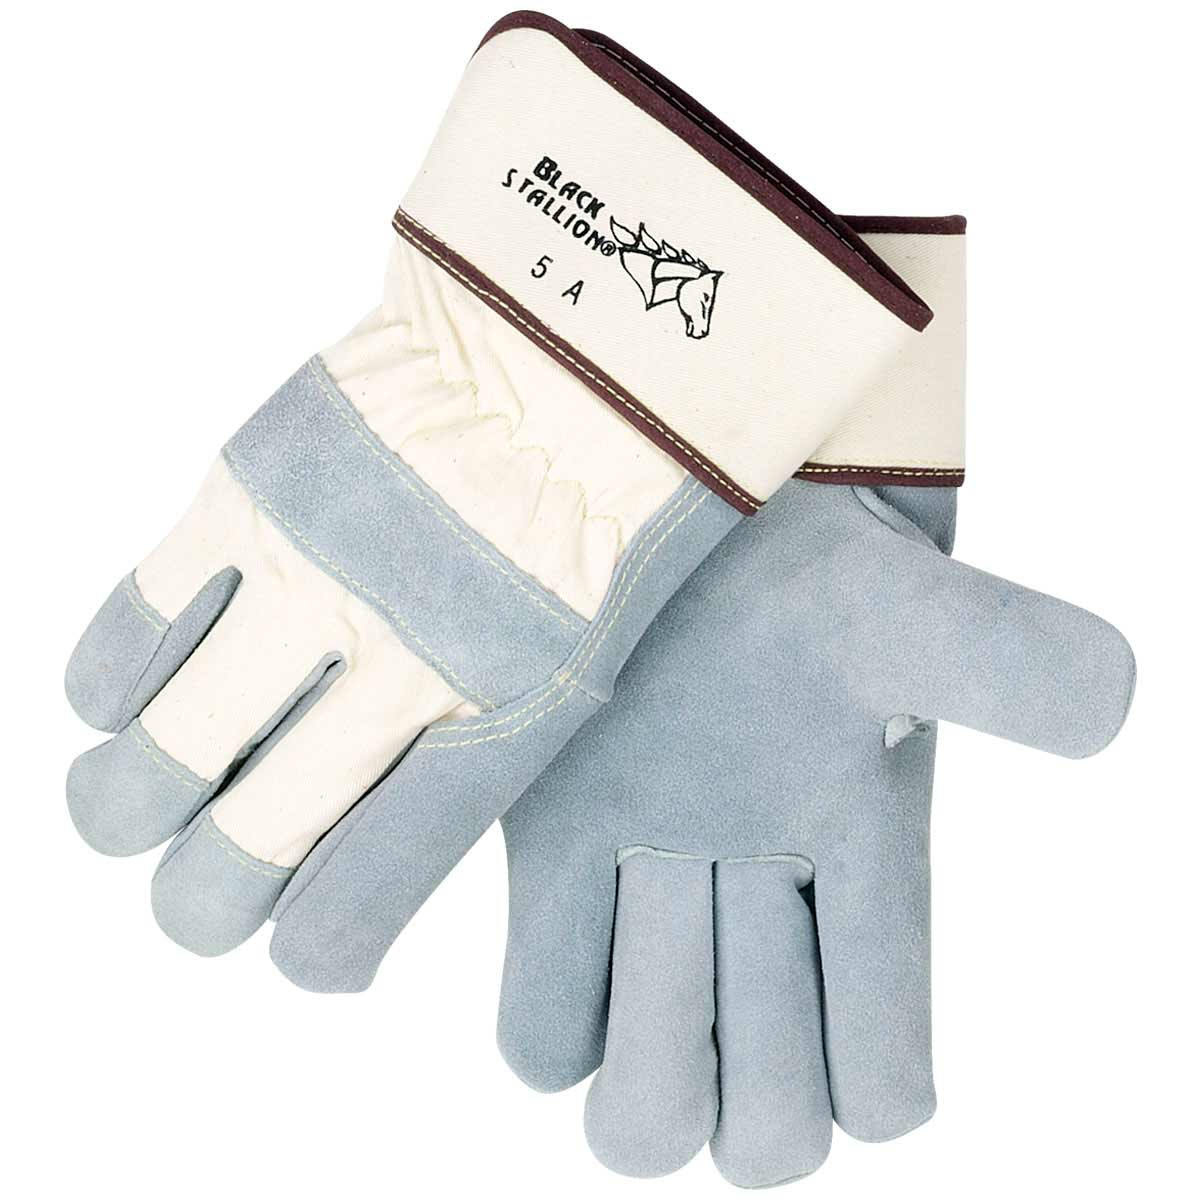 SIDE SPLIT COWHIDE - STRAP BACK PREMIUM LEATHER PALM WORK GLOVES. Pack 12. Medium. 5AM